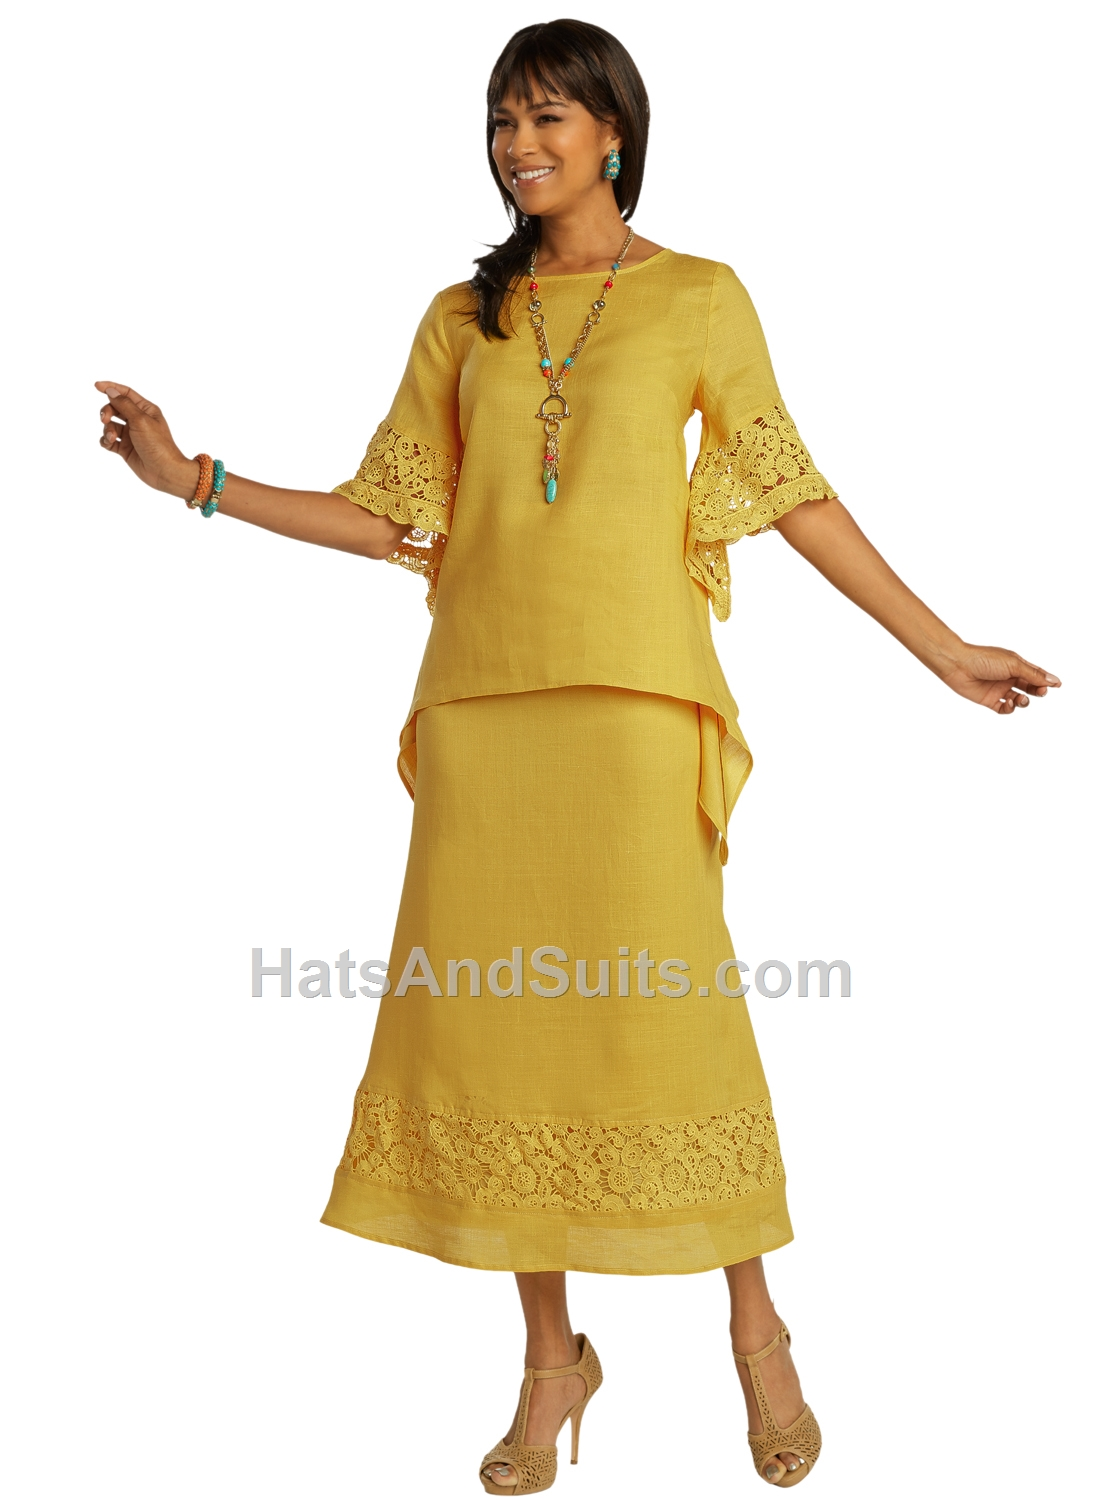 3342-mustard LISA RENE' 2 Pc. Tunic & Skirt Set. SP20